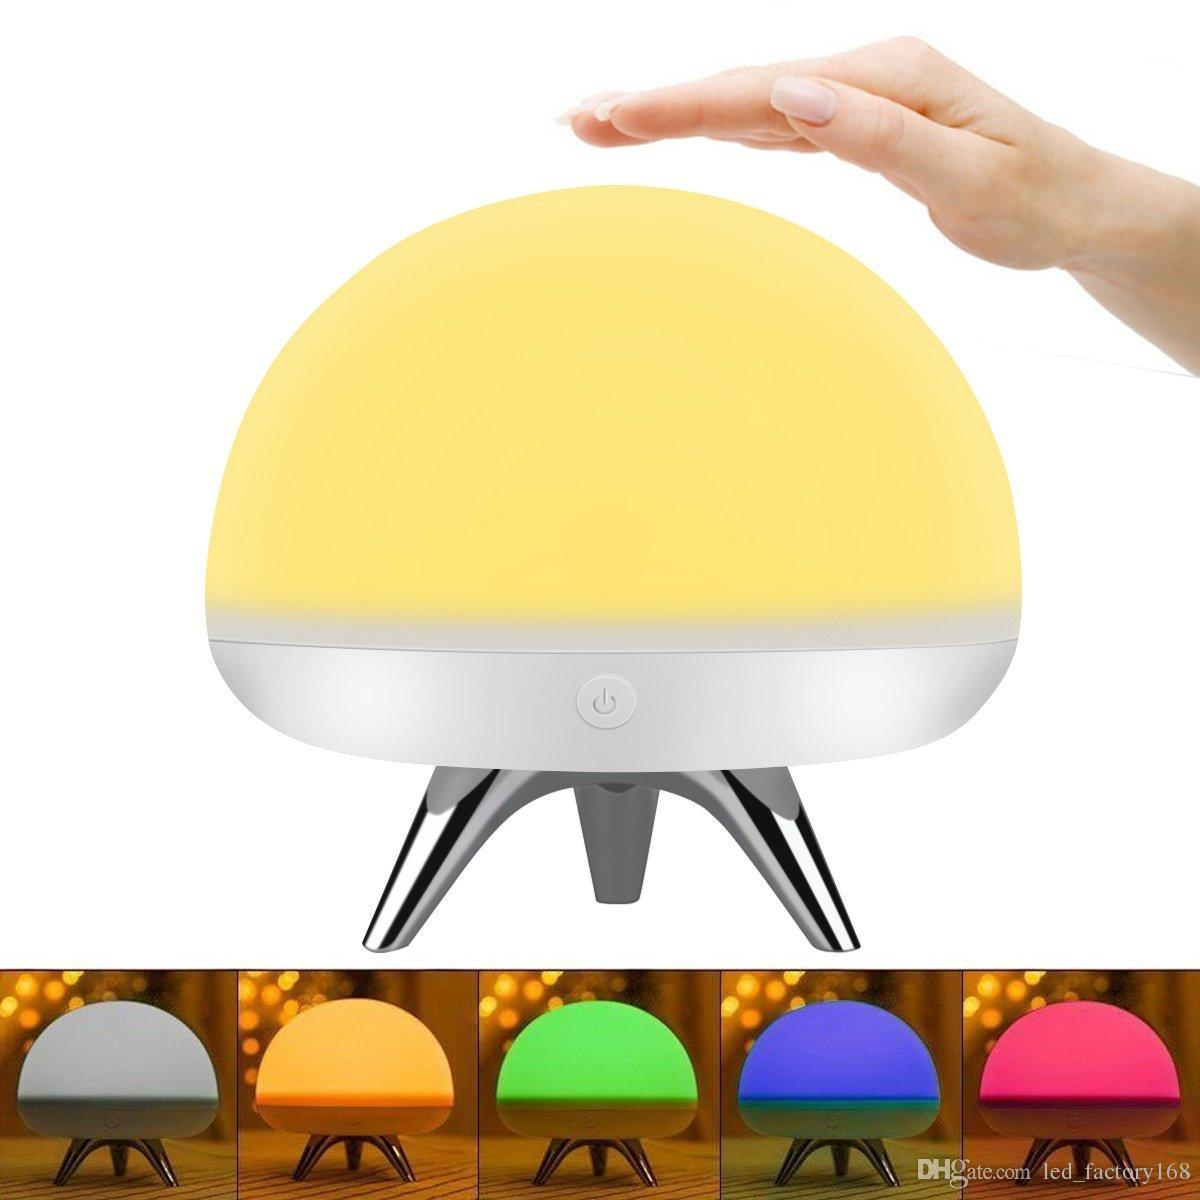 Table Lamps For Kids Children Kids Led Night Light Silicone Toy Nightlight Baby Rooms Nursery Lamps Bedroom Touch Sensor Table Lamps Christmas Gifts With 4 Light